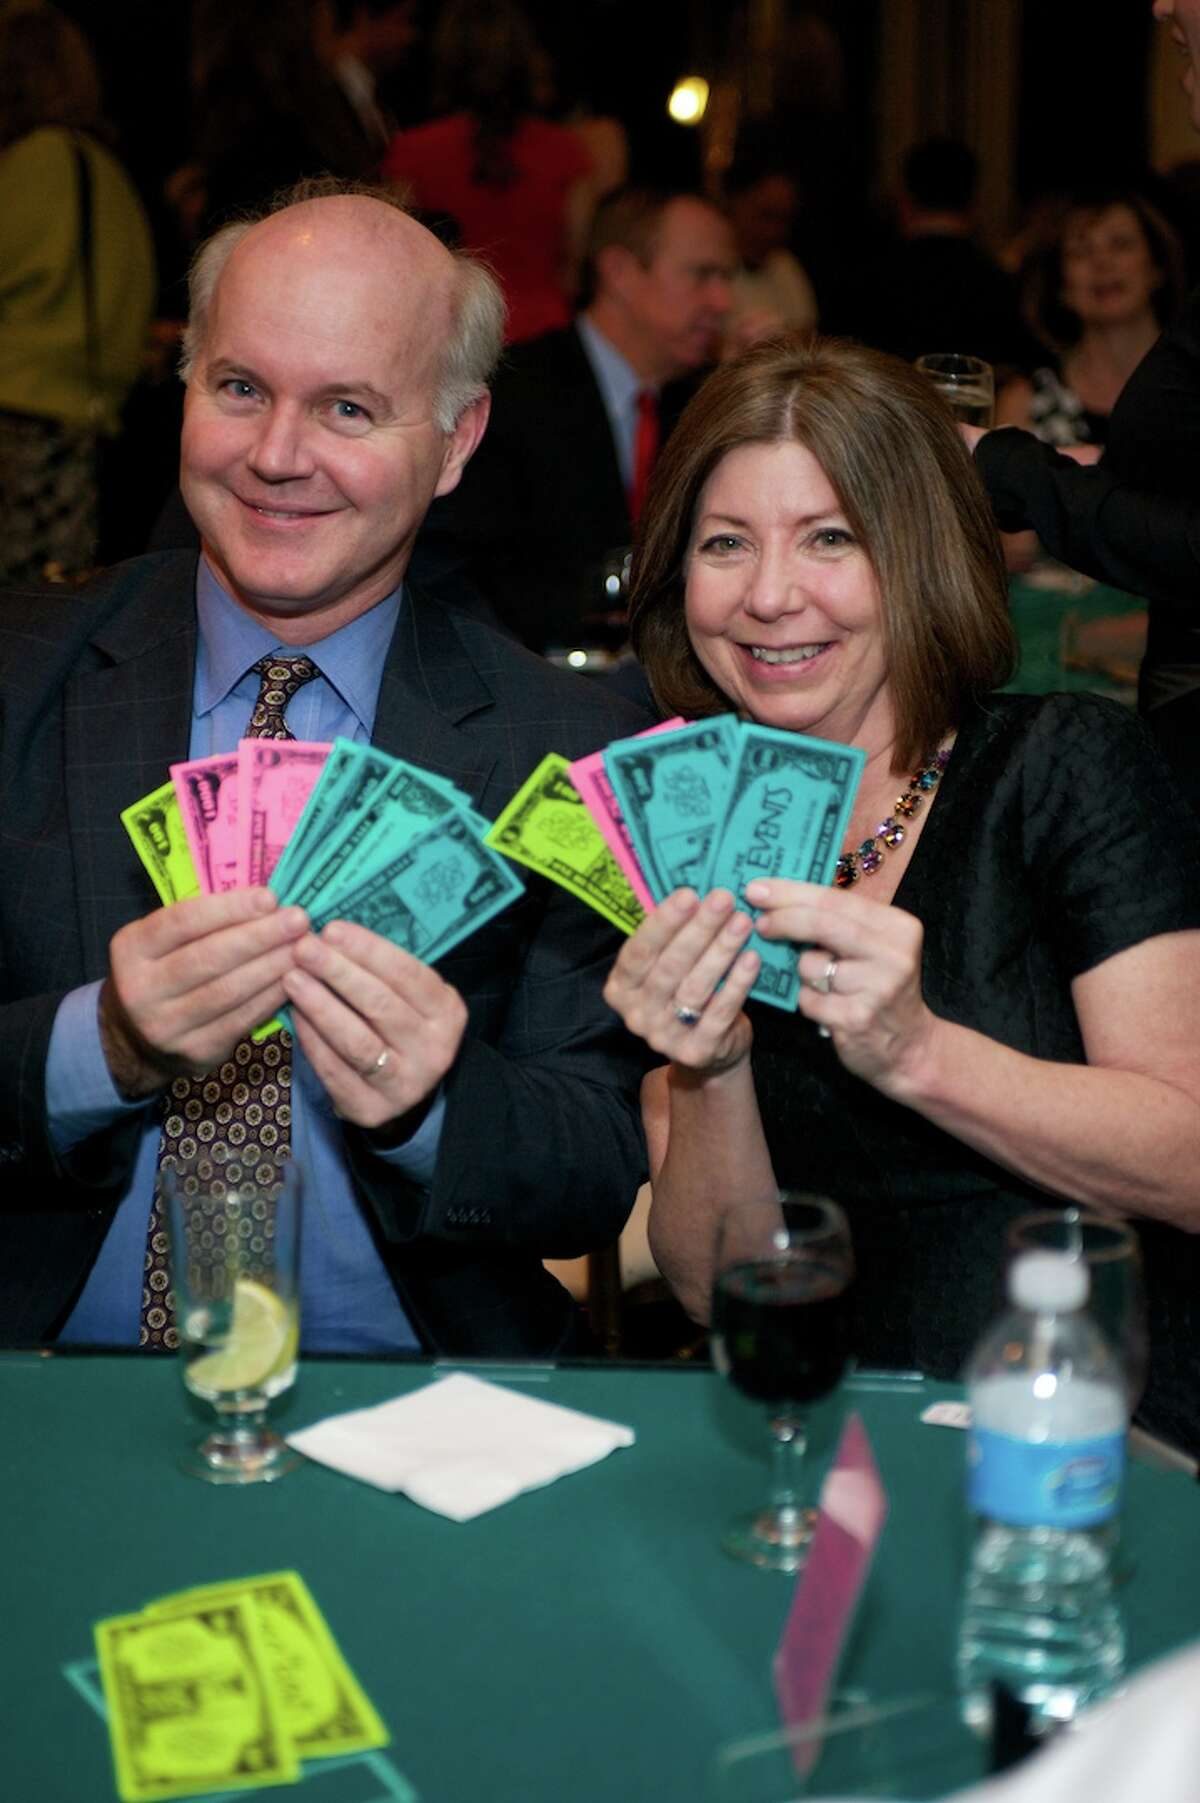 Were you Seen at the third annual Northeastern Association of the Blind at Albany's Casino Night fundraiser, held at the Albany Country Club in Voorheesville on Thursday, Nov. 7, 2013?